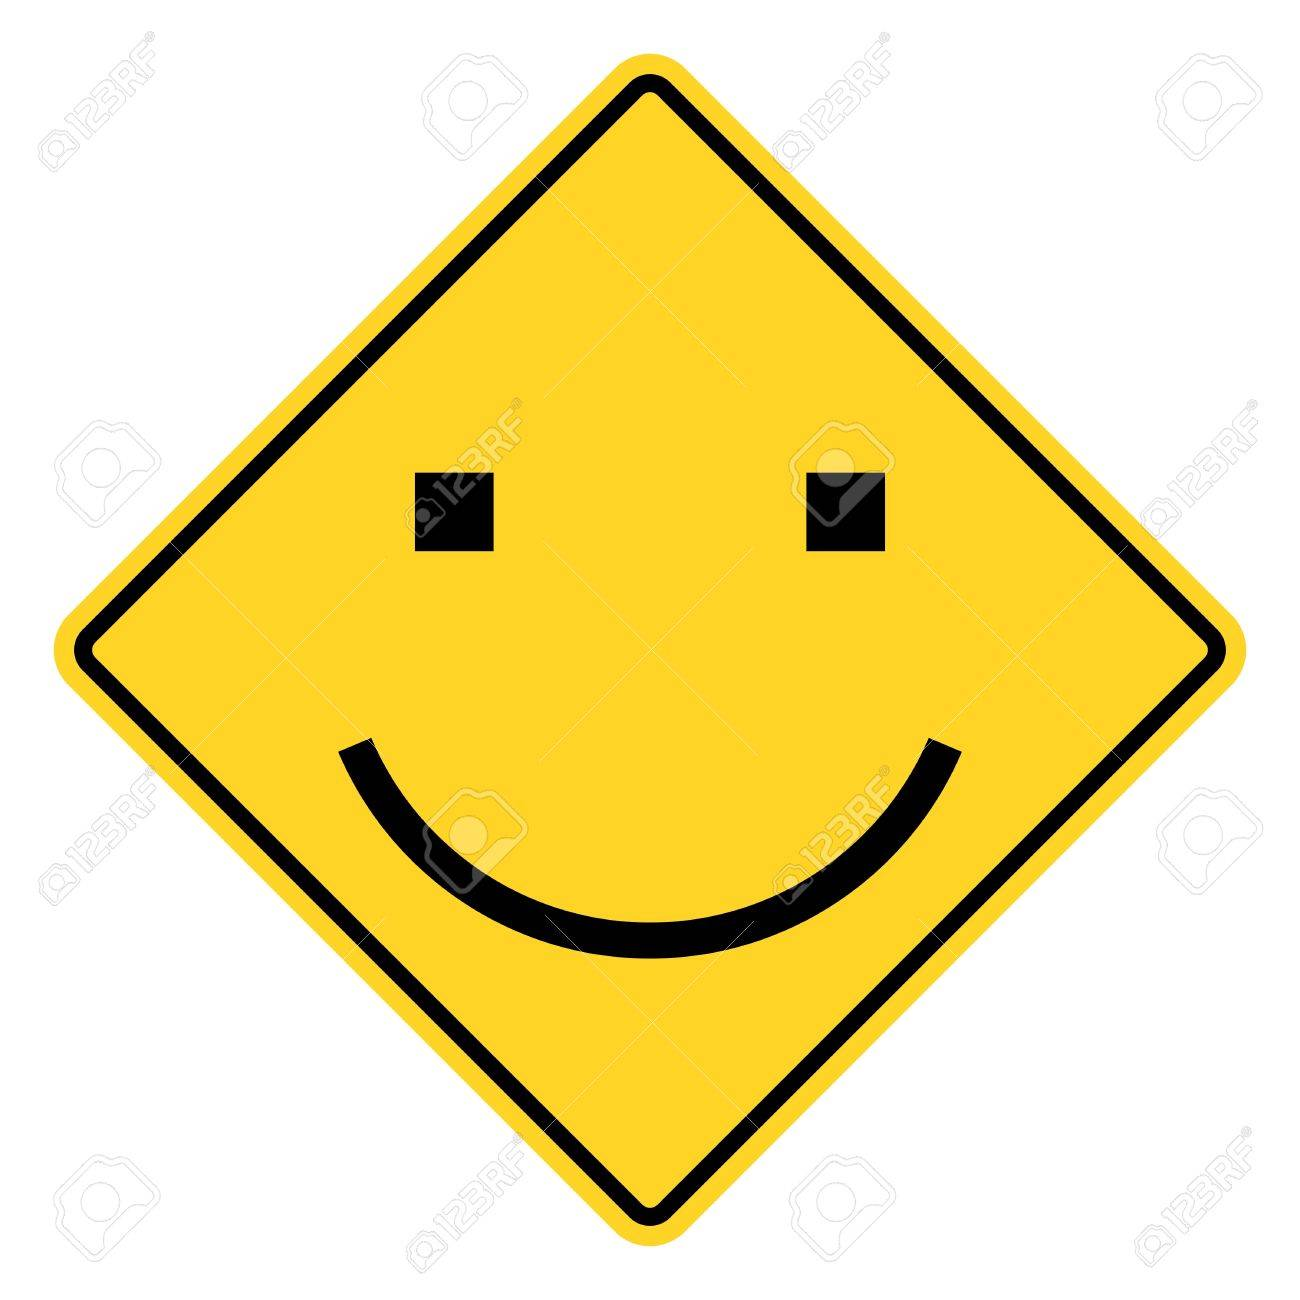 Smiley Sign Stock Vector - 9241385